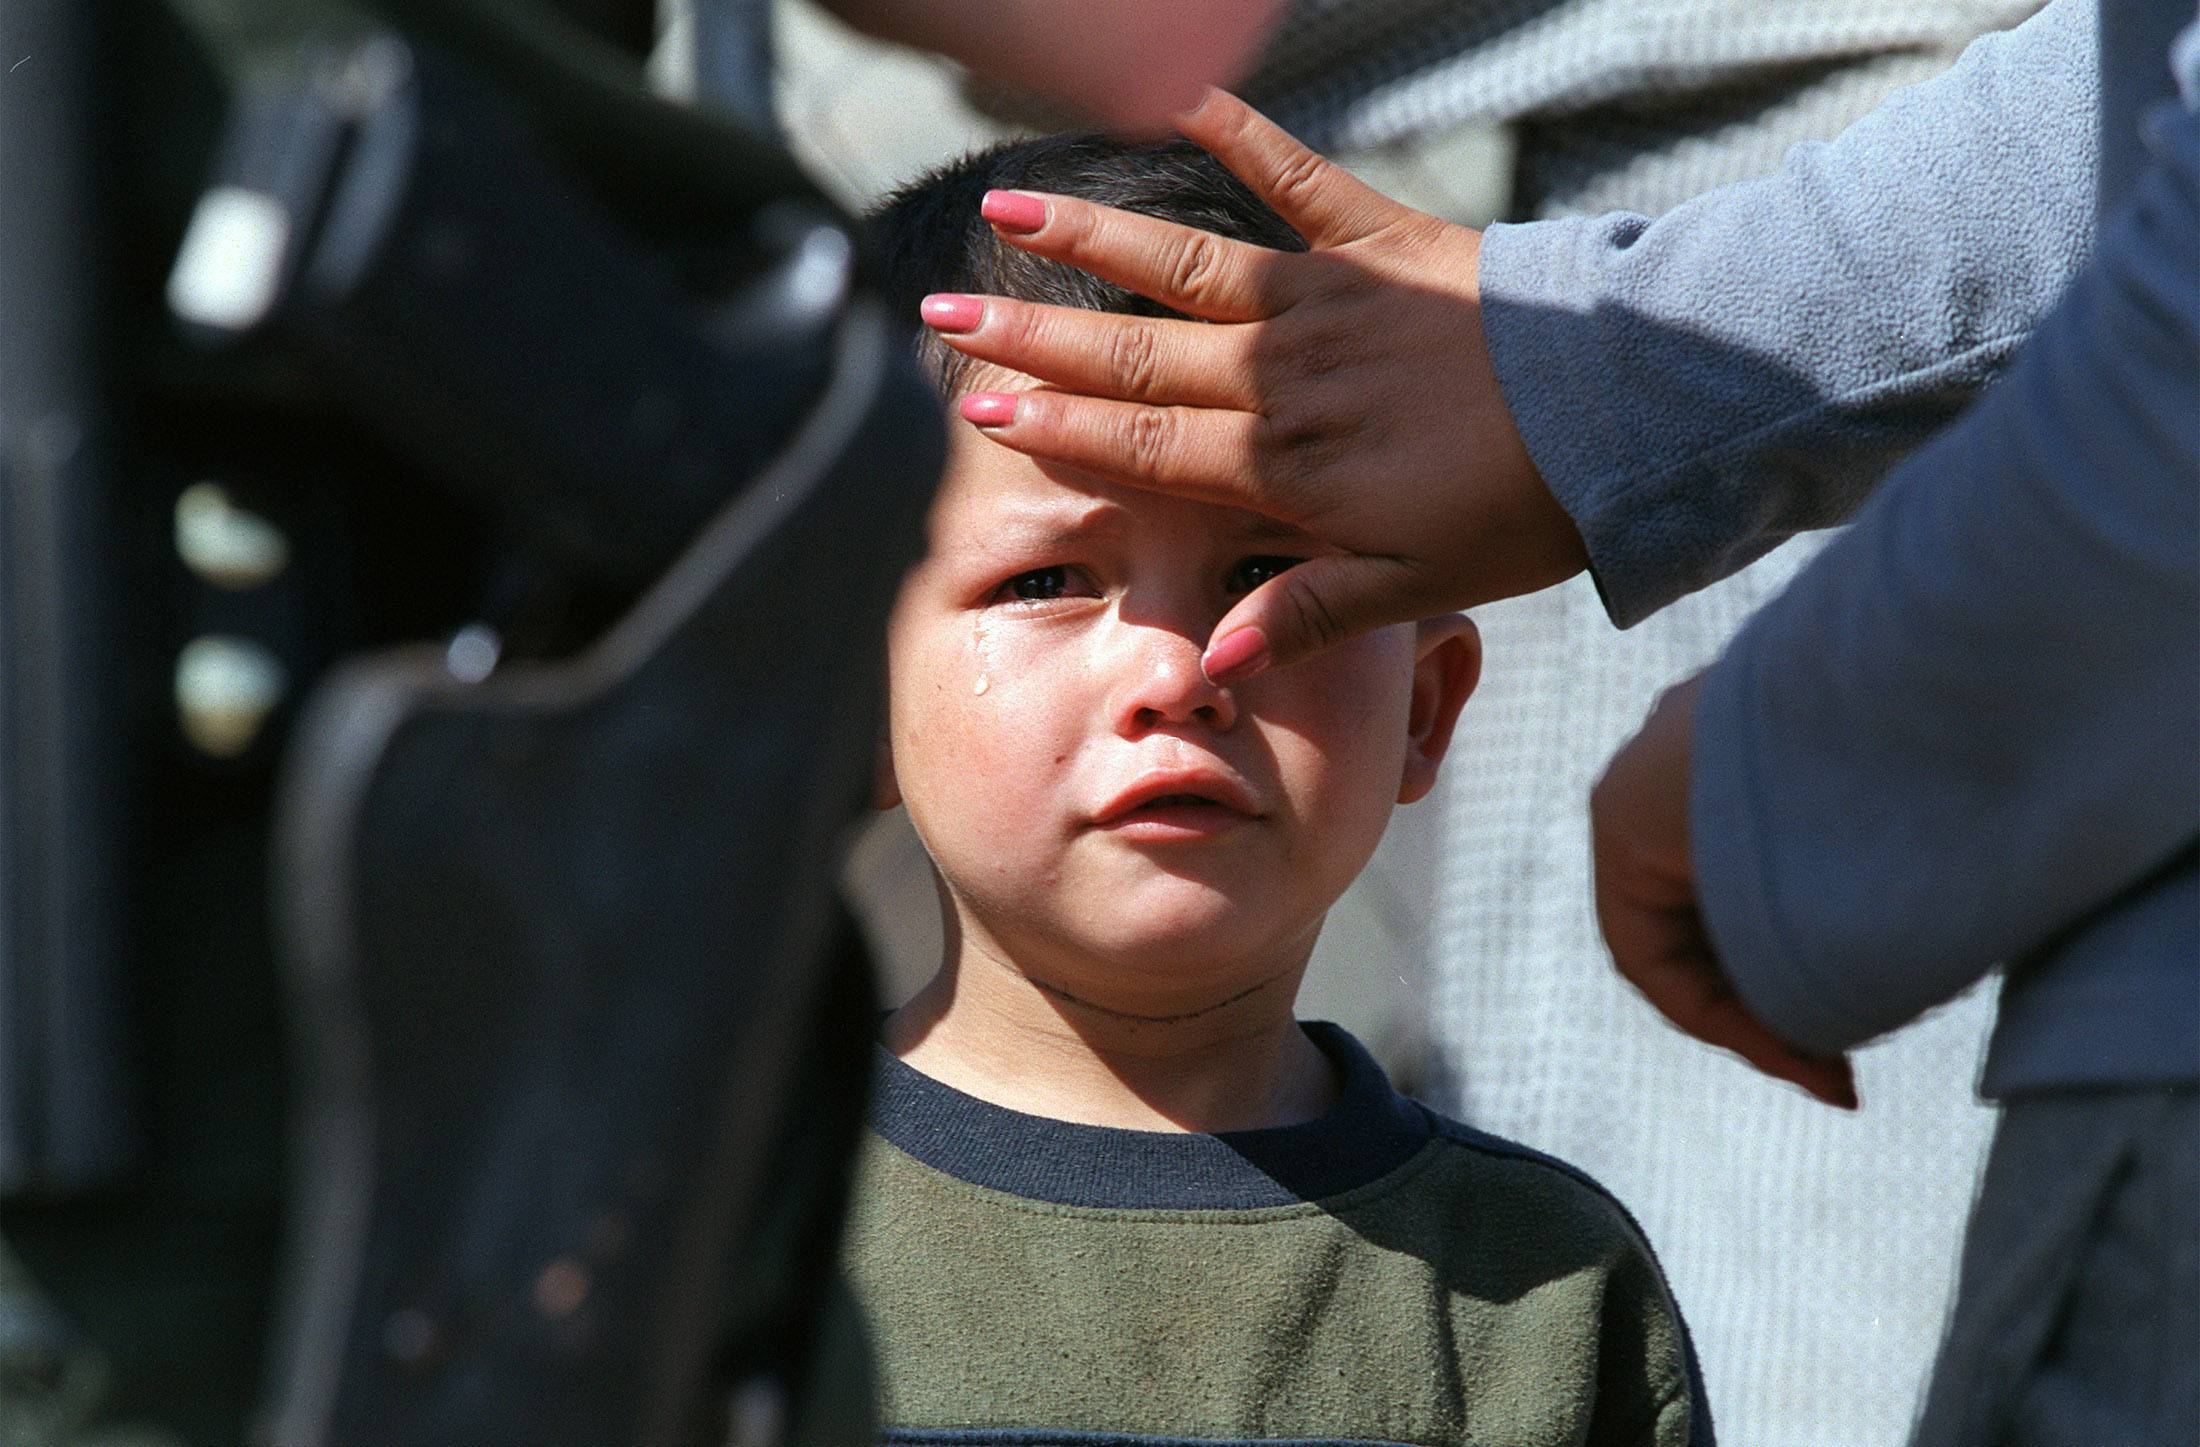 A young Mexican boy has tears wiped from his eyes by his mother as a U.S. border agent books them after finding them trying to illegally cross the border into Arizona.